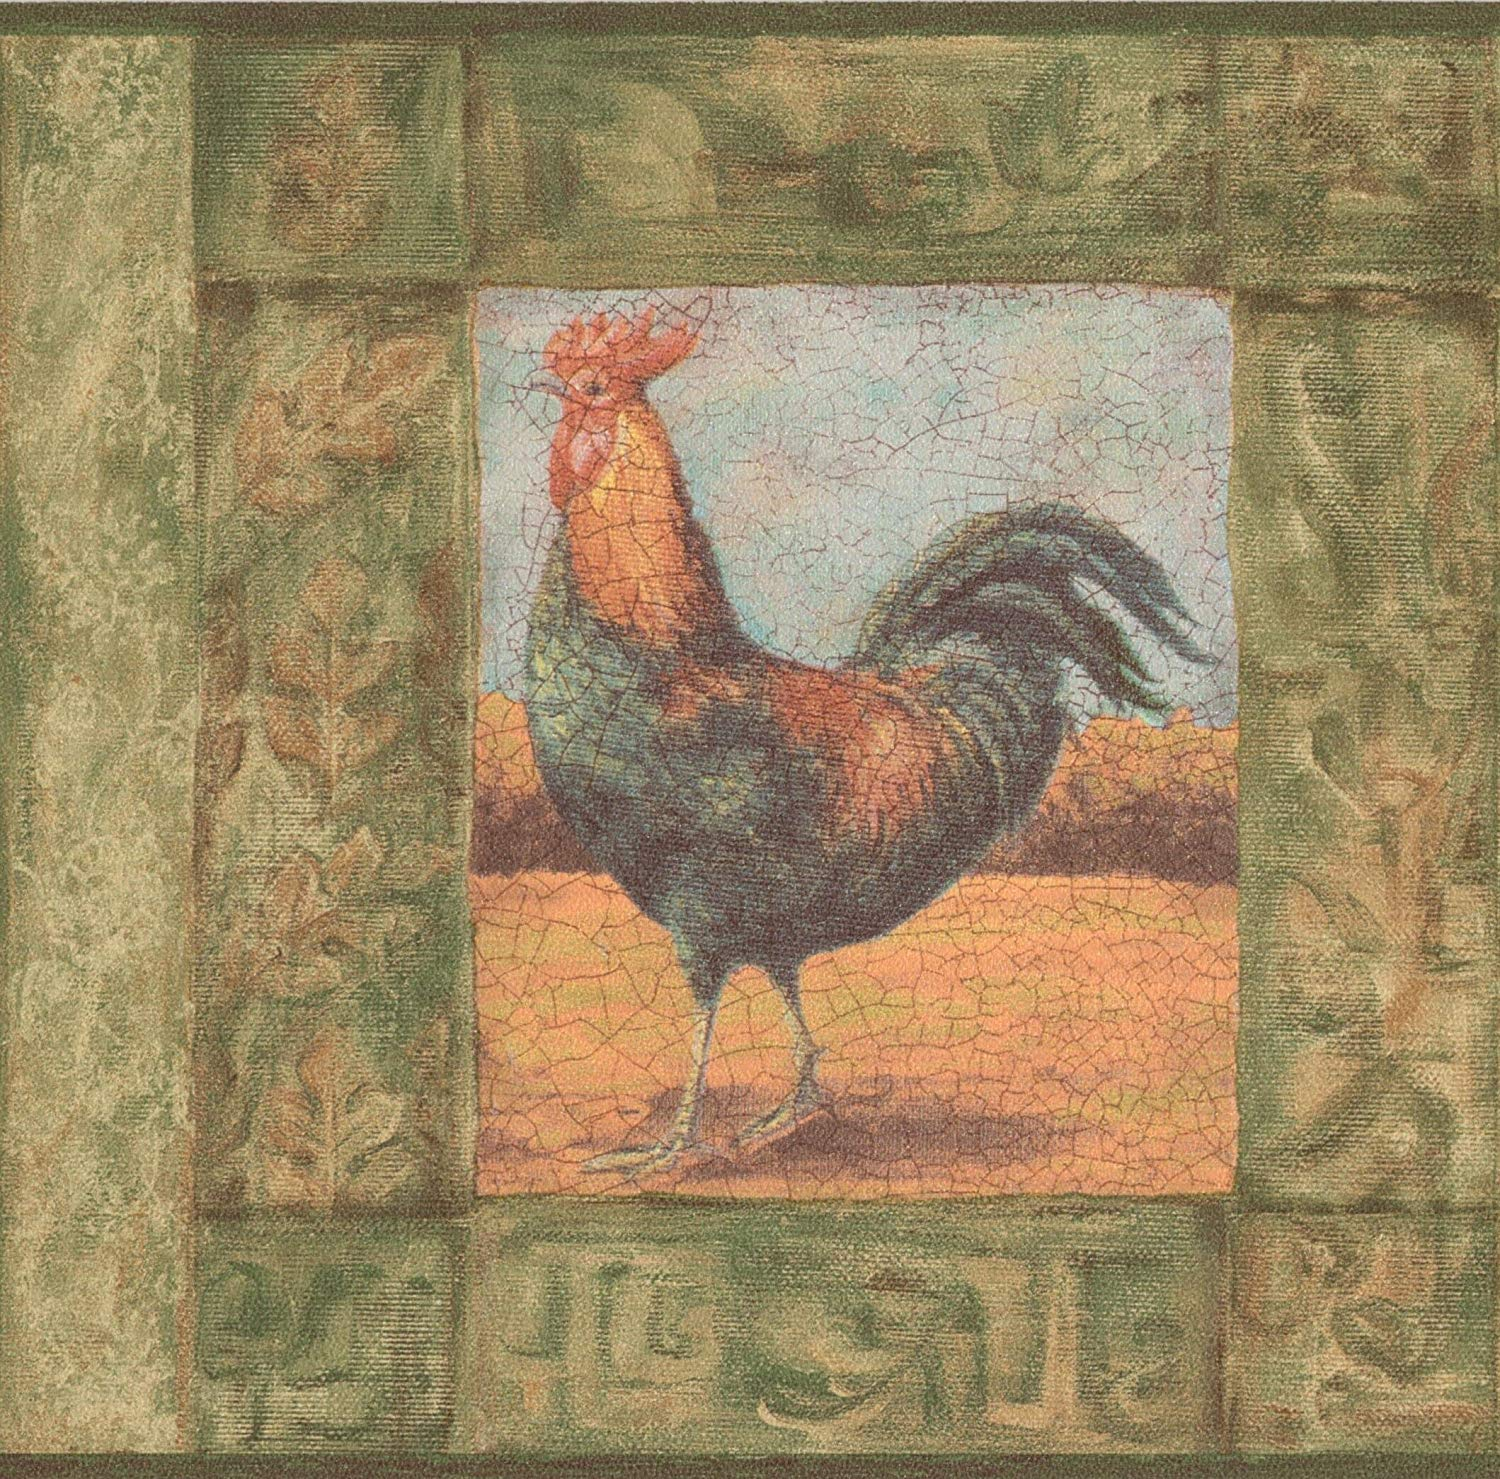 Cracked Green Frame Painting of Rooster Vintage Wallpaper Border 1500x1479